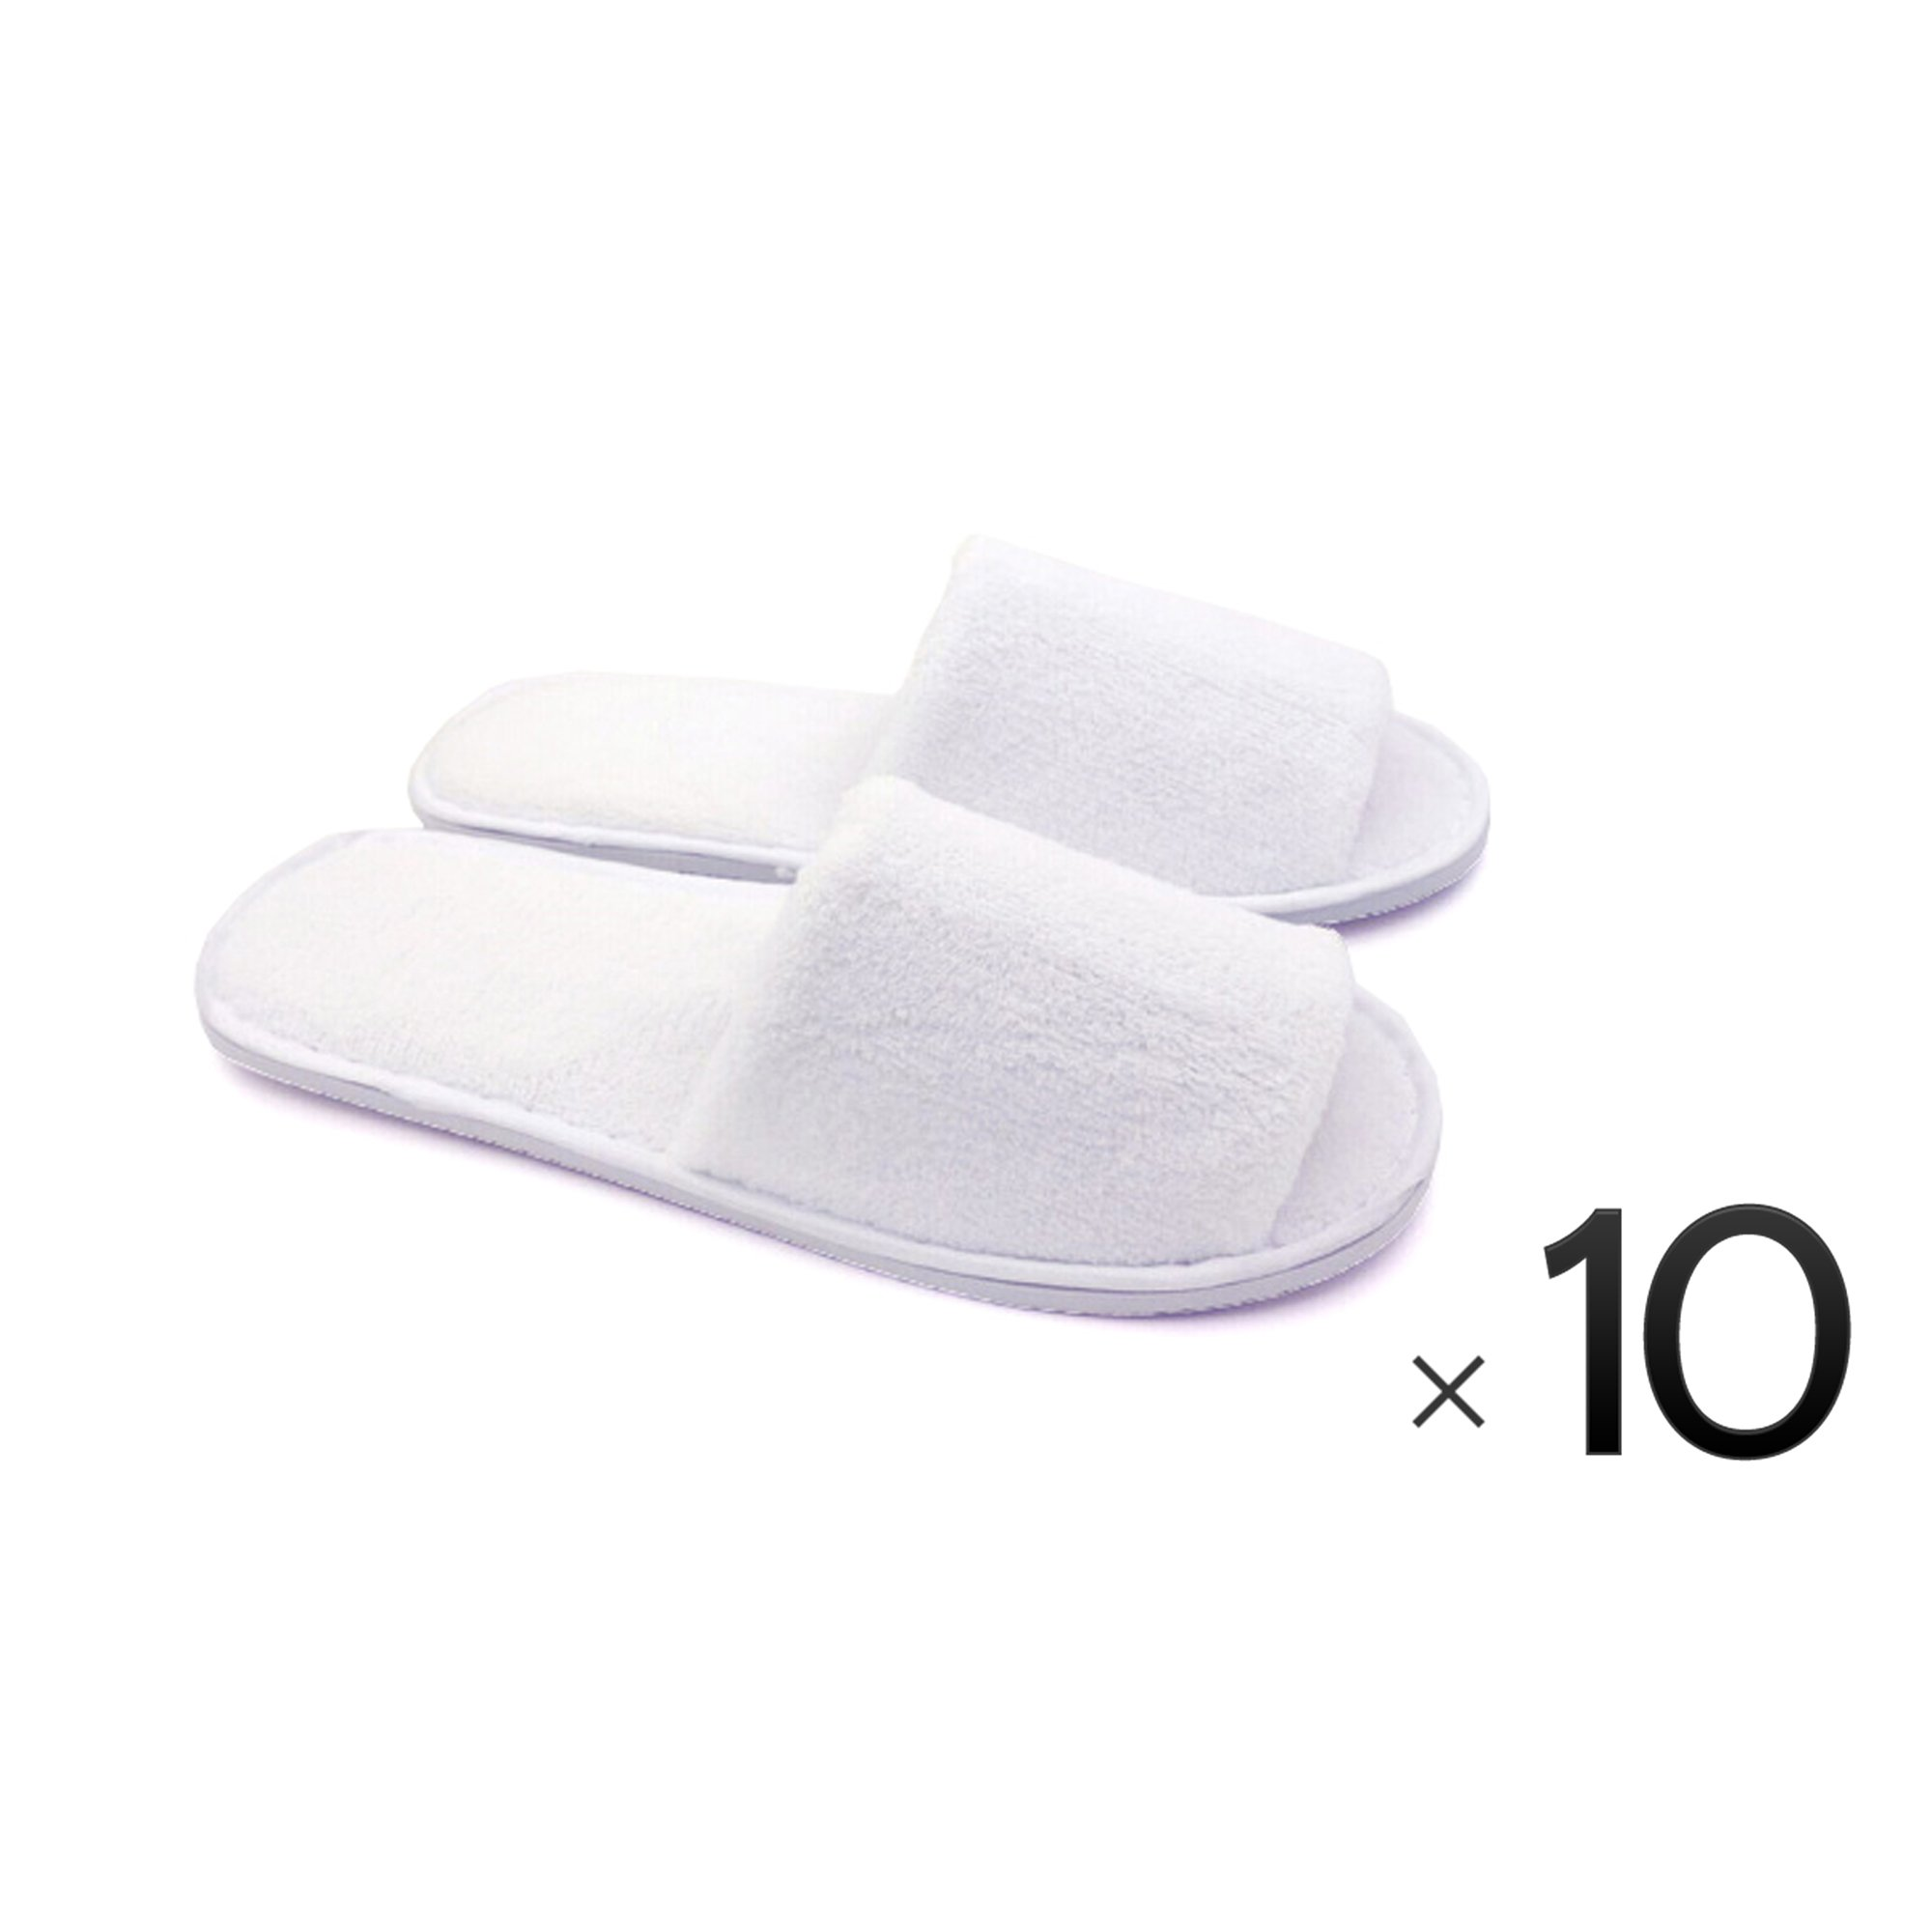 Luxurious Cotton Cloth Slipper Slippers Home Salon Spa Hotel Men Women Open Toes - 10 Pairs - White